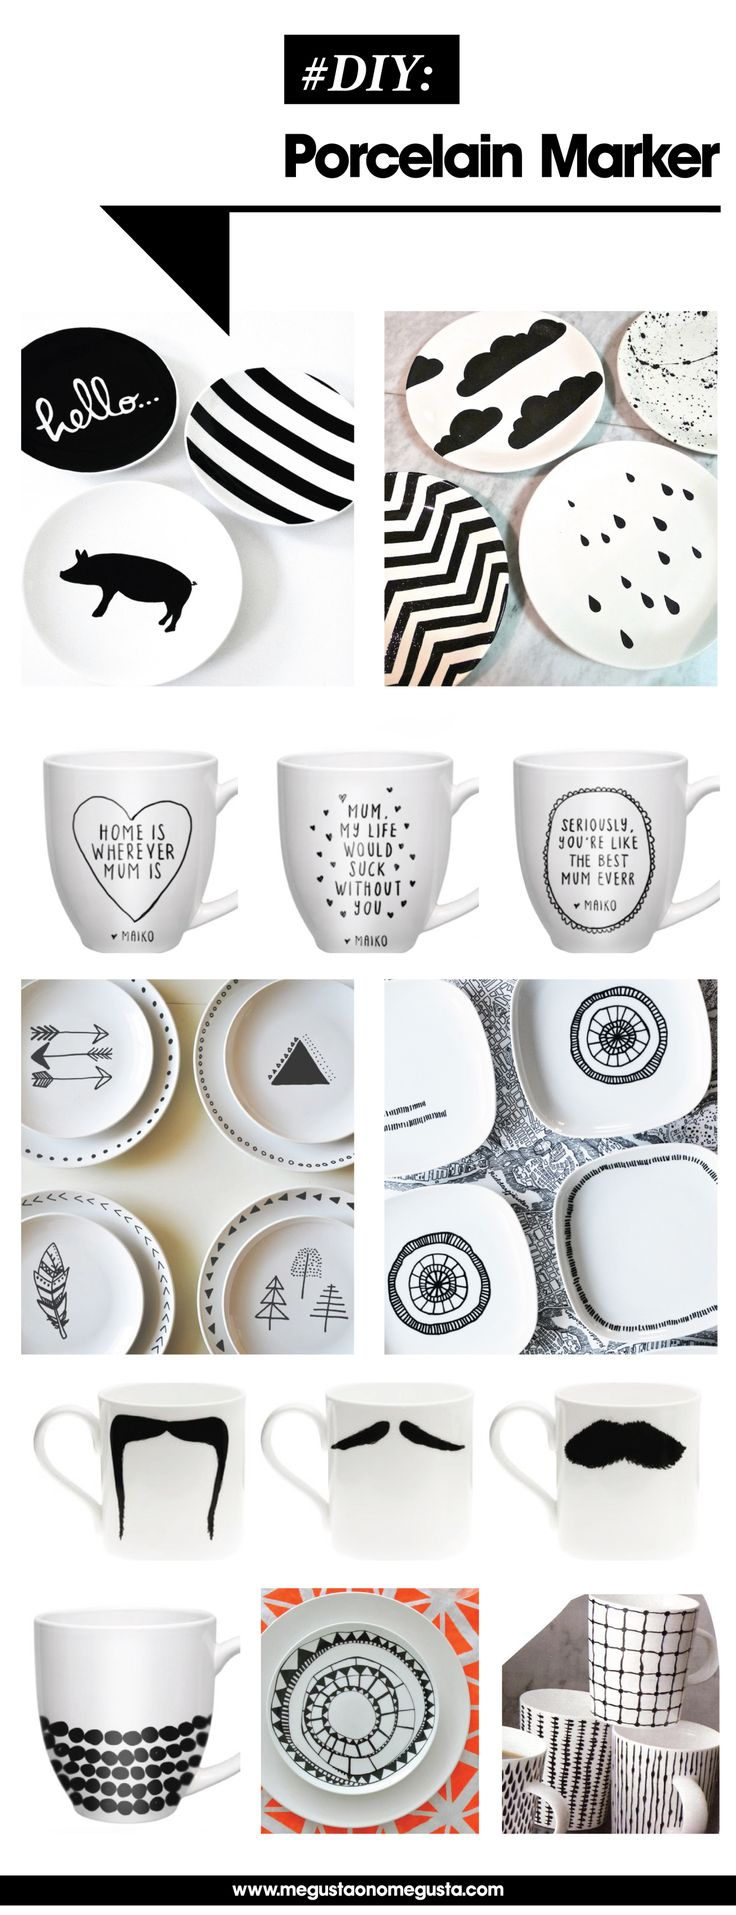 DIY porcelain marker projects